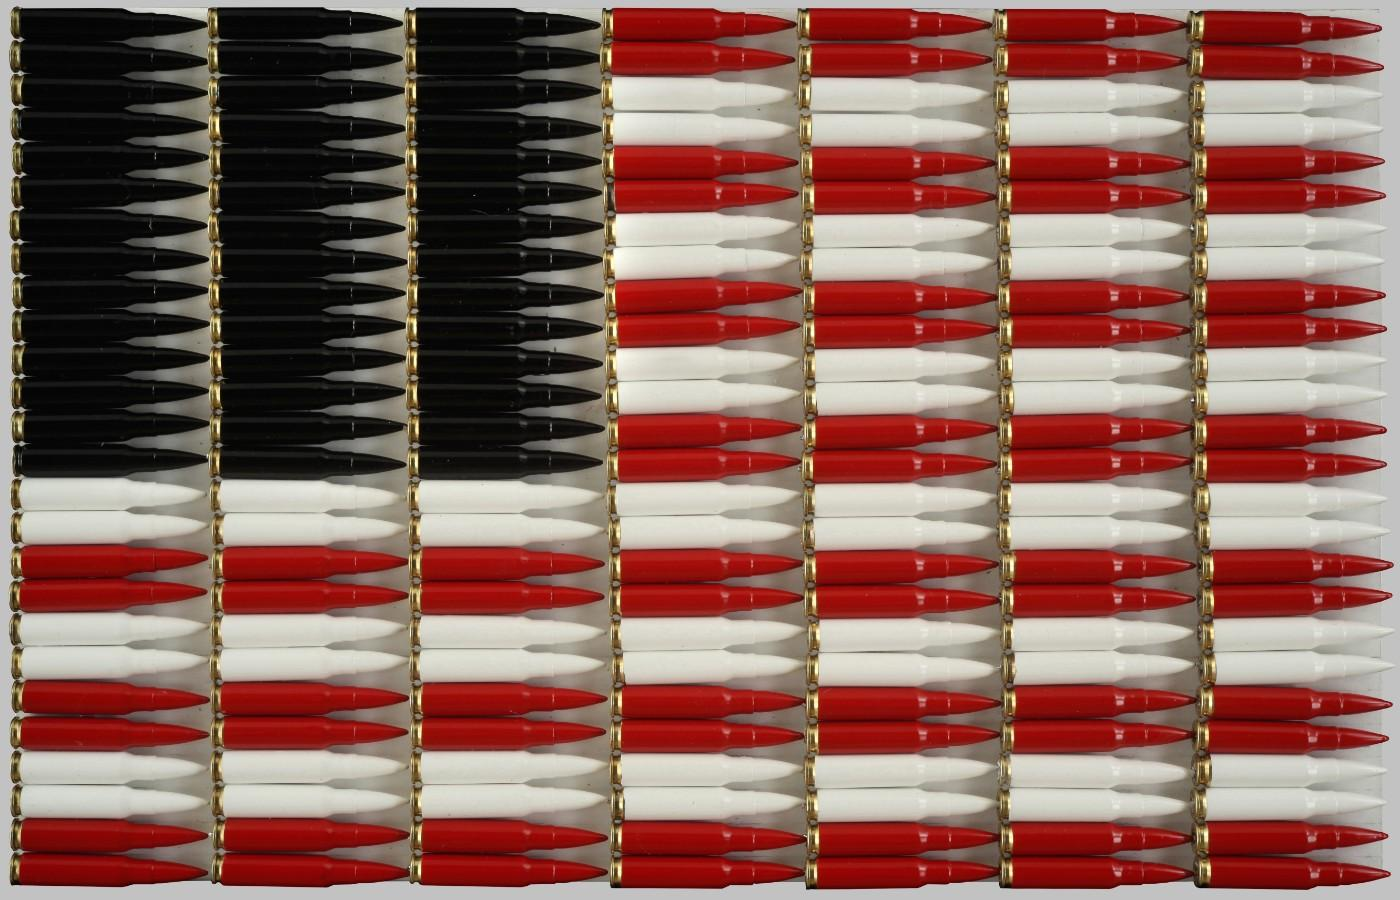 Michele Pred, Red White and Black, 2016